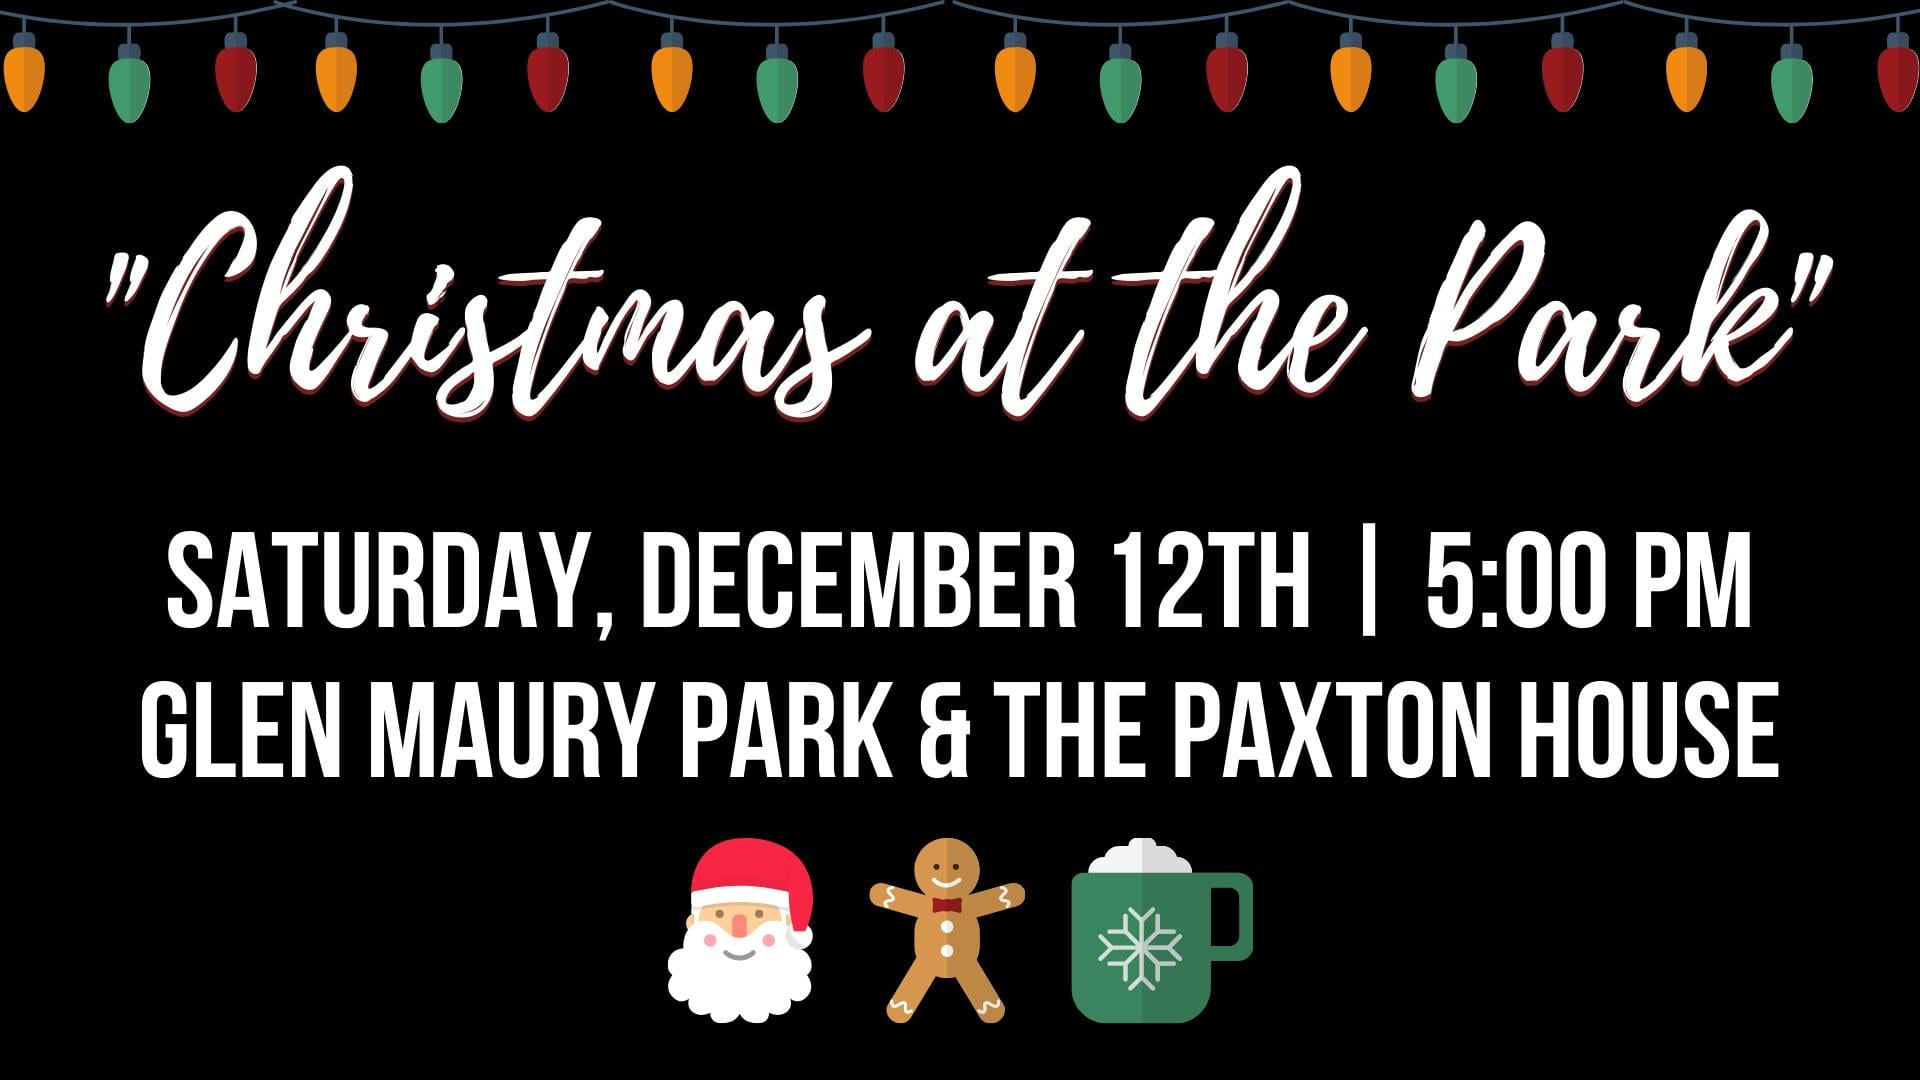 Christmas at the Park